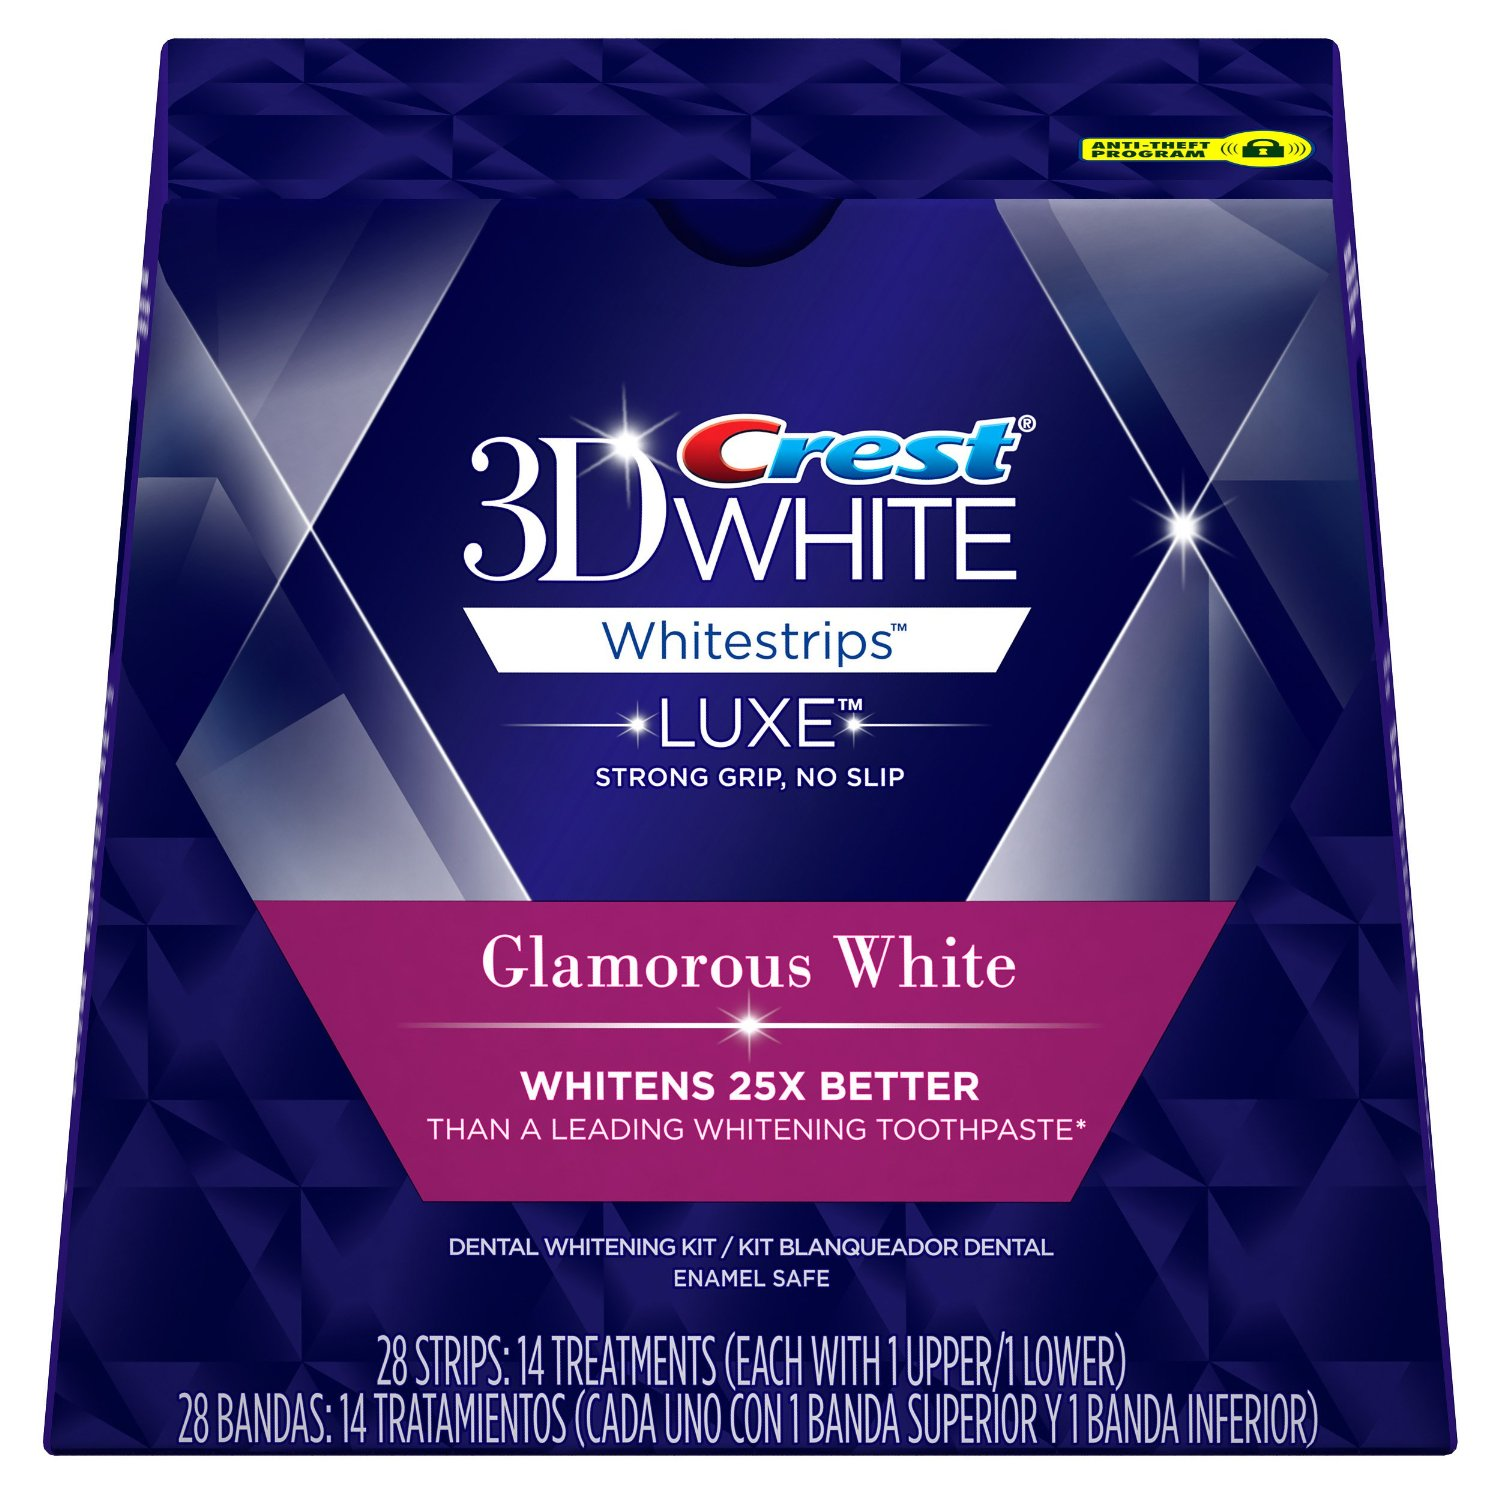 Crest 3D white teeth whitening strips